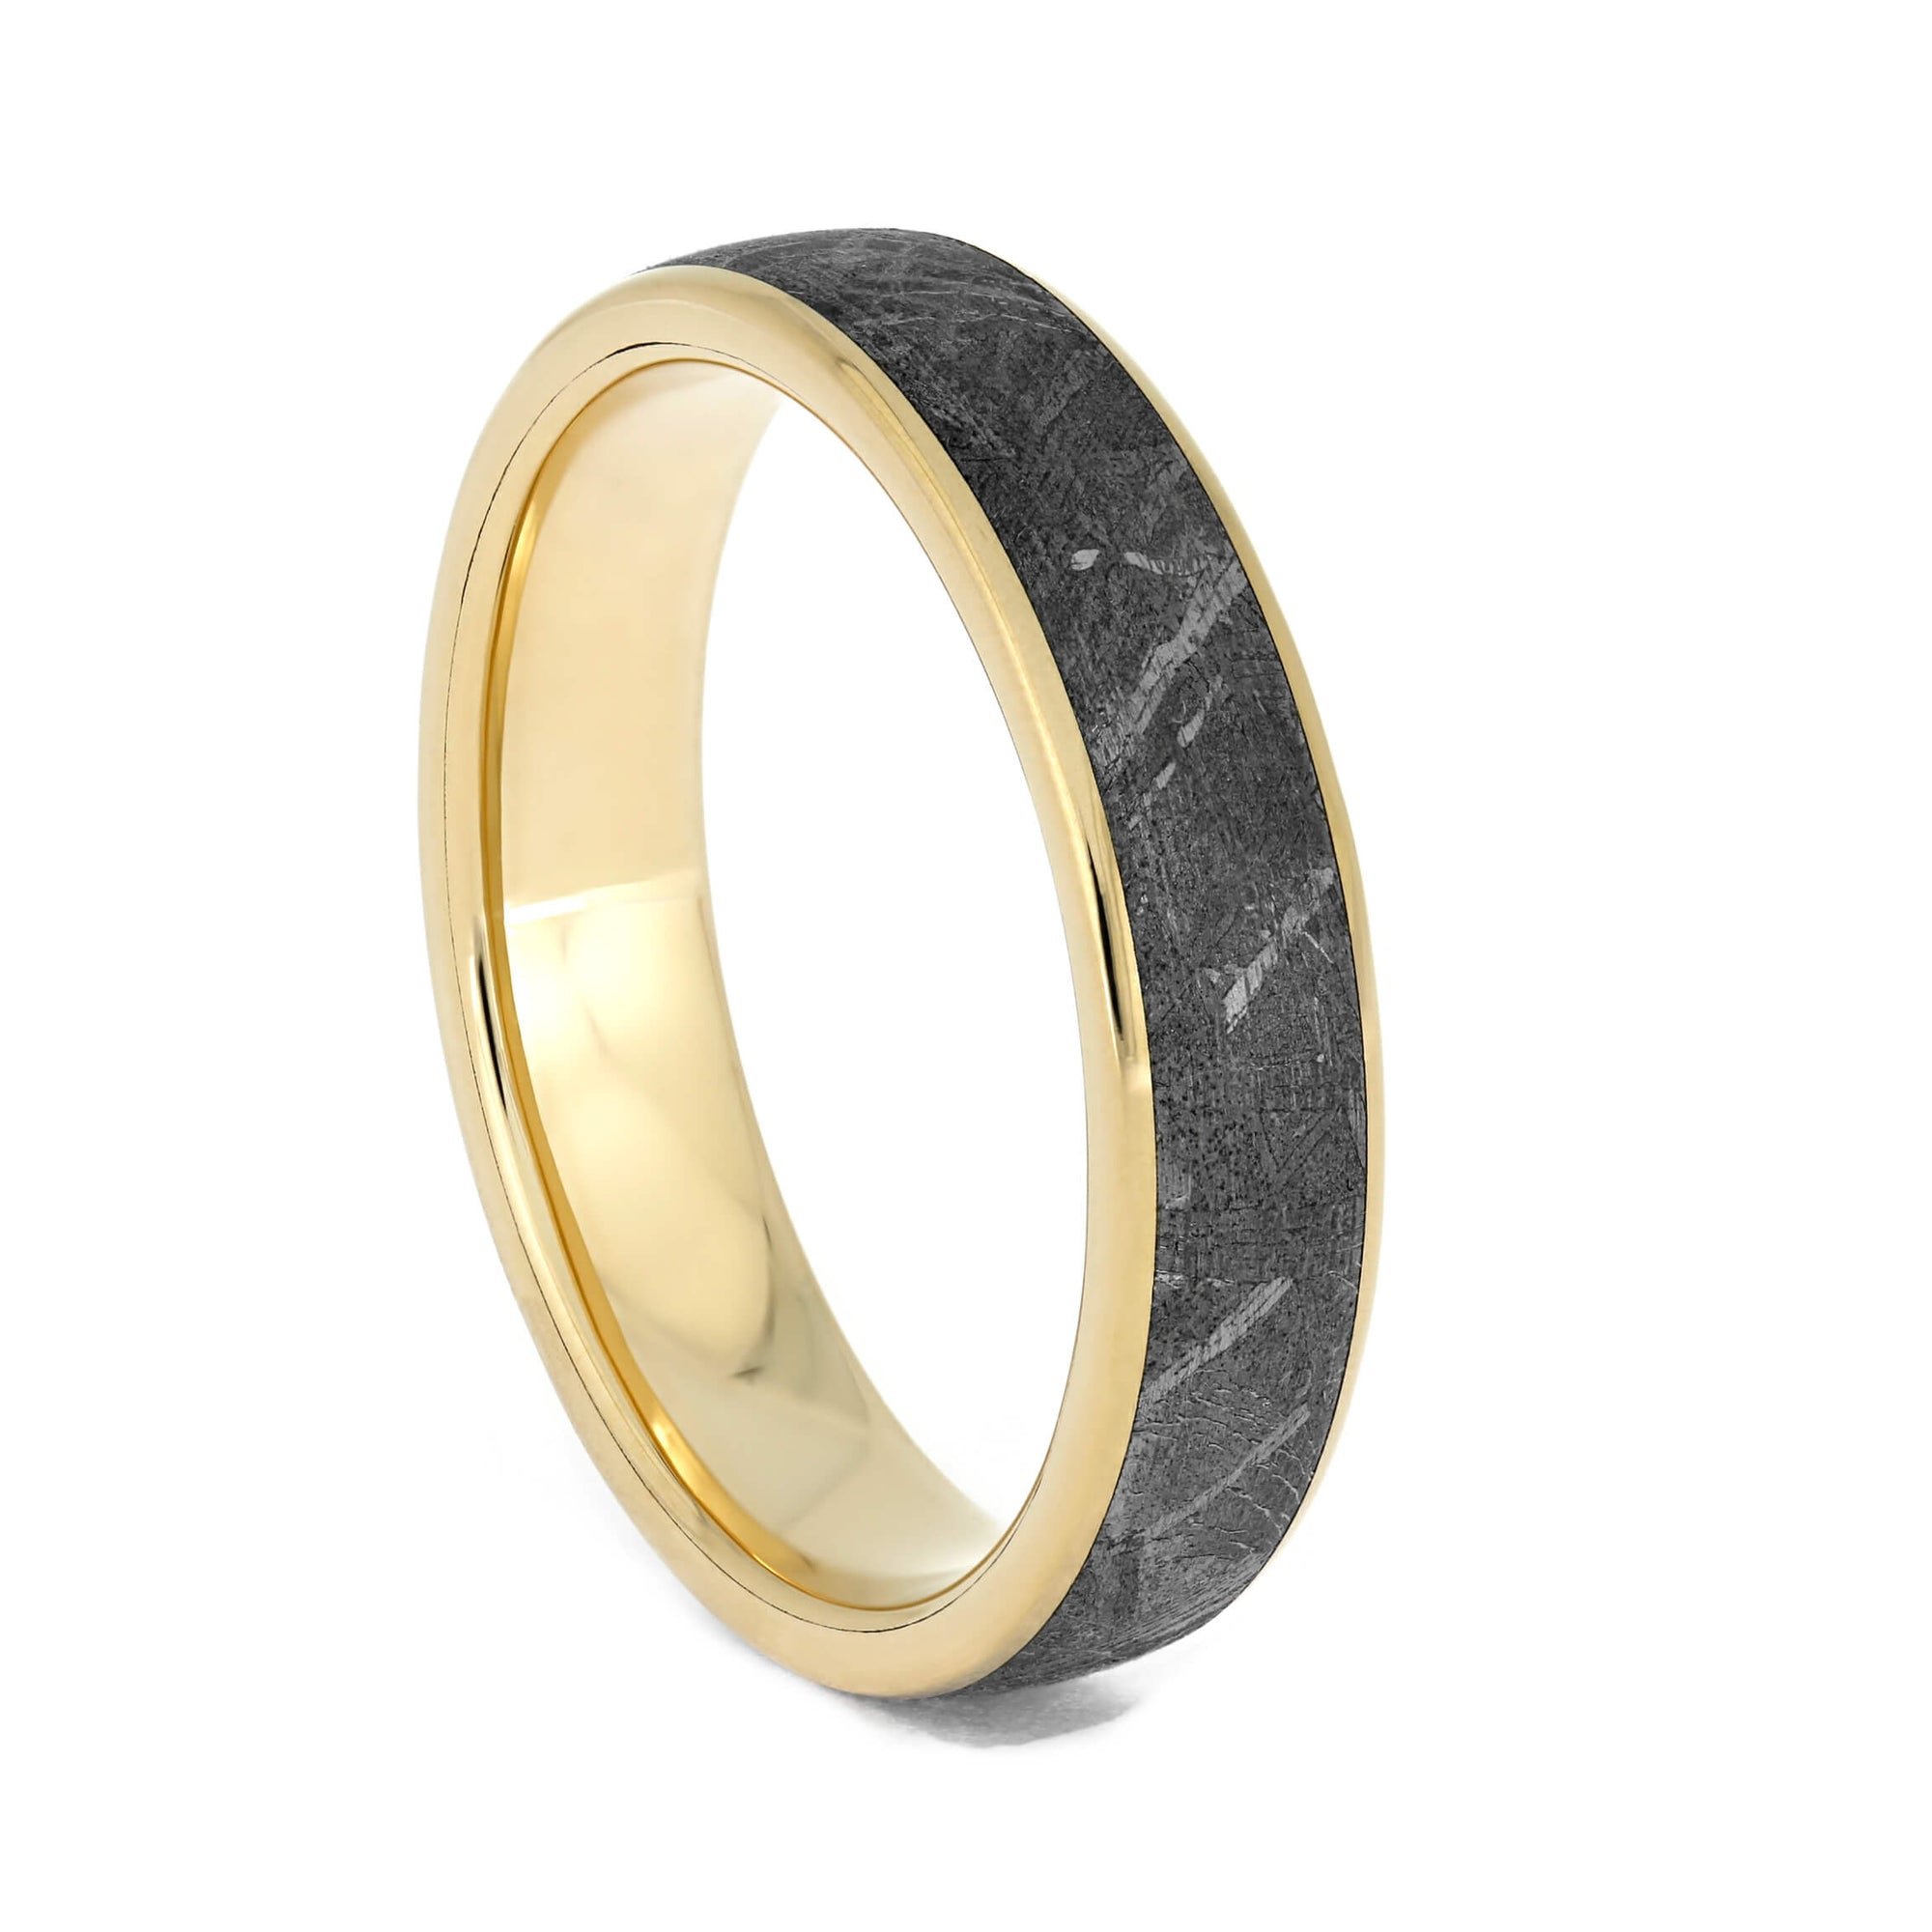 Authentic Meteorite Women's Wedding Band in Yellow Gold-4021 - Jewelry by Johan